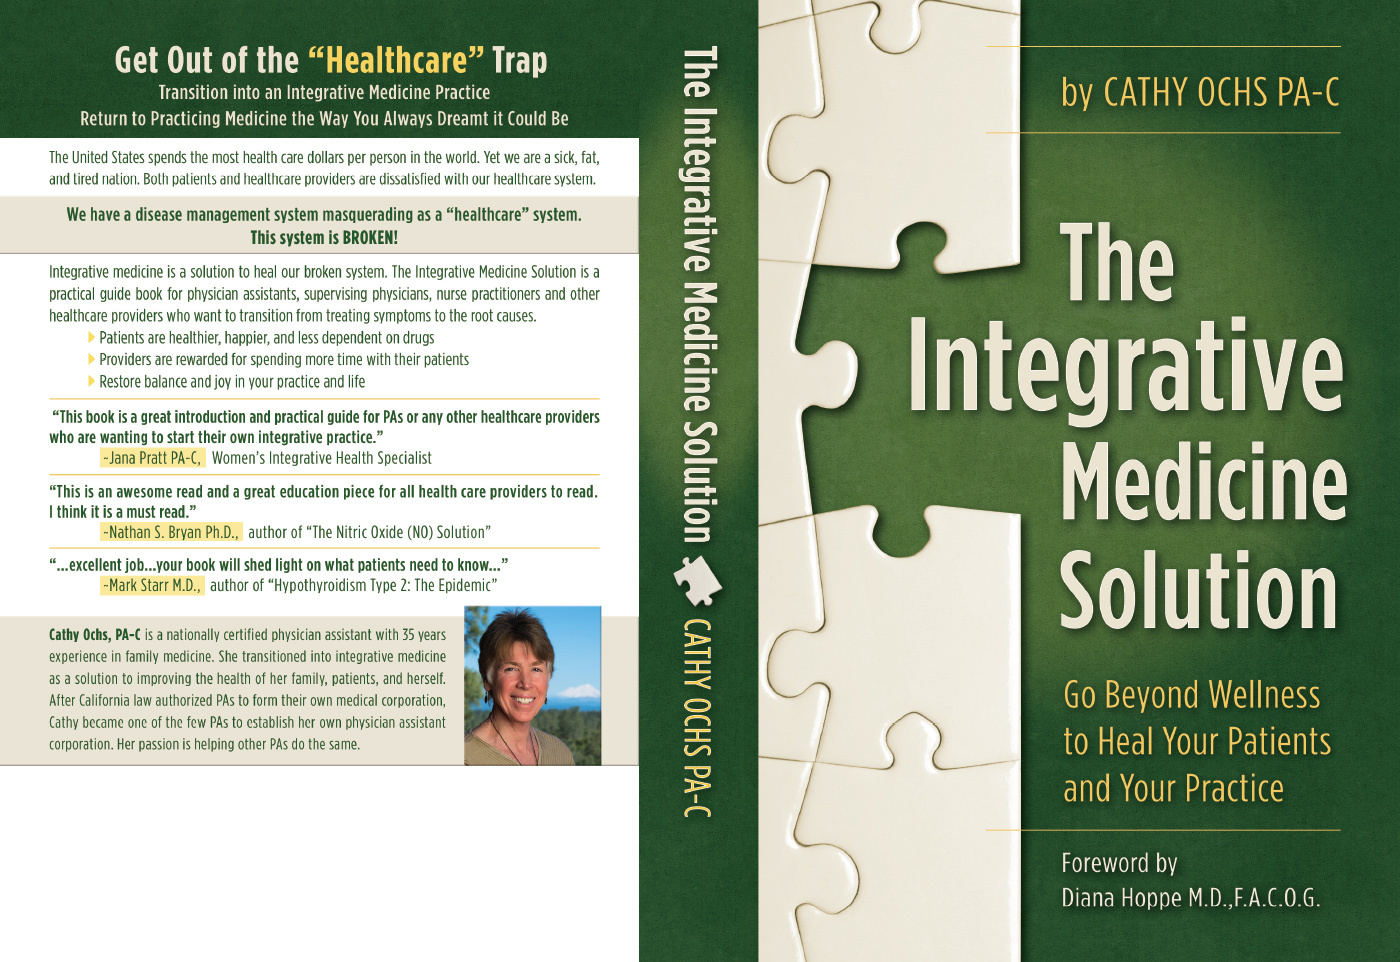 The Integrative Medicine Solution | Cathy Ochs PA-C